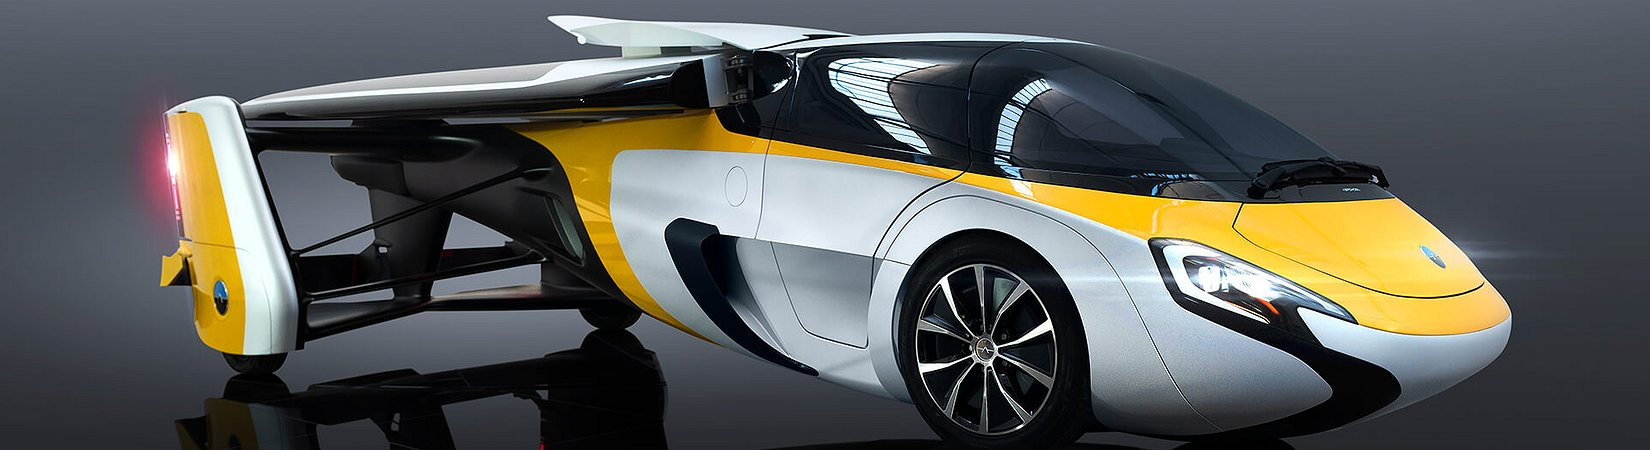 World's first flying car ready to pre-order